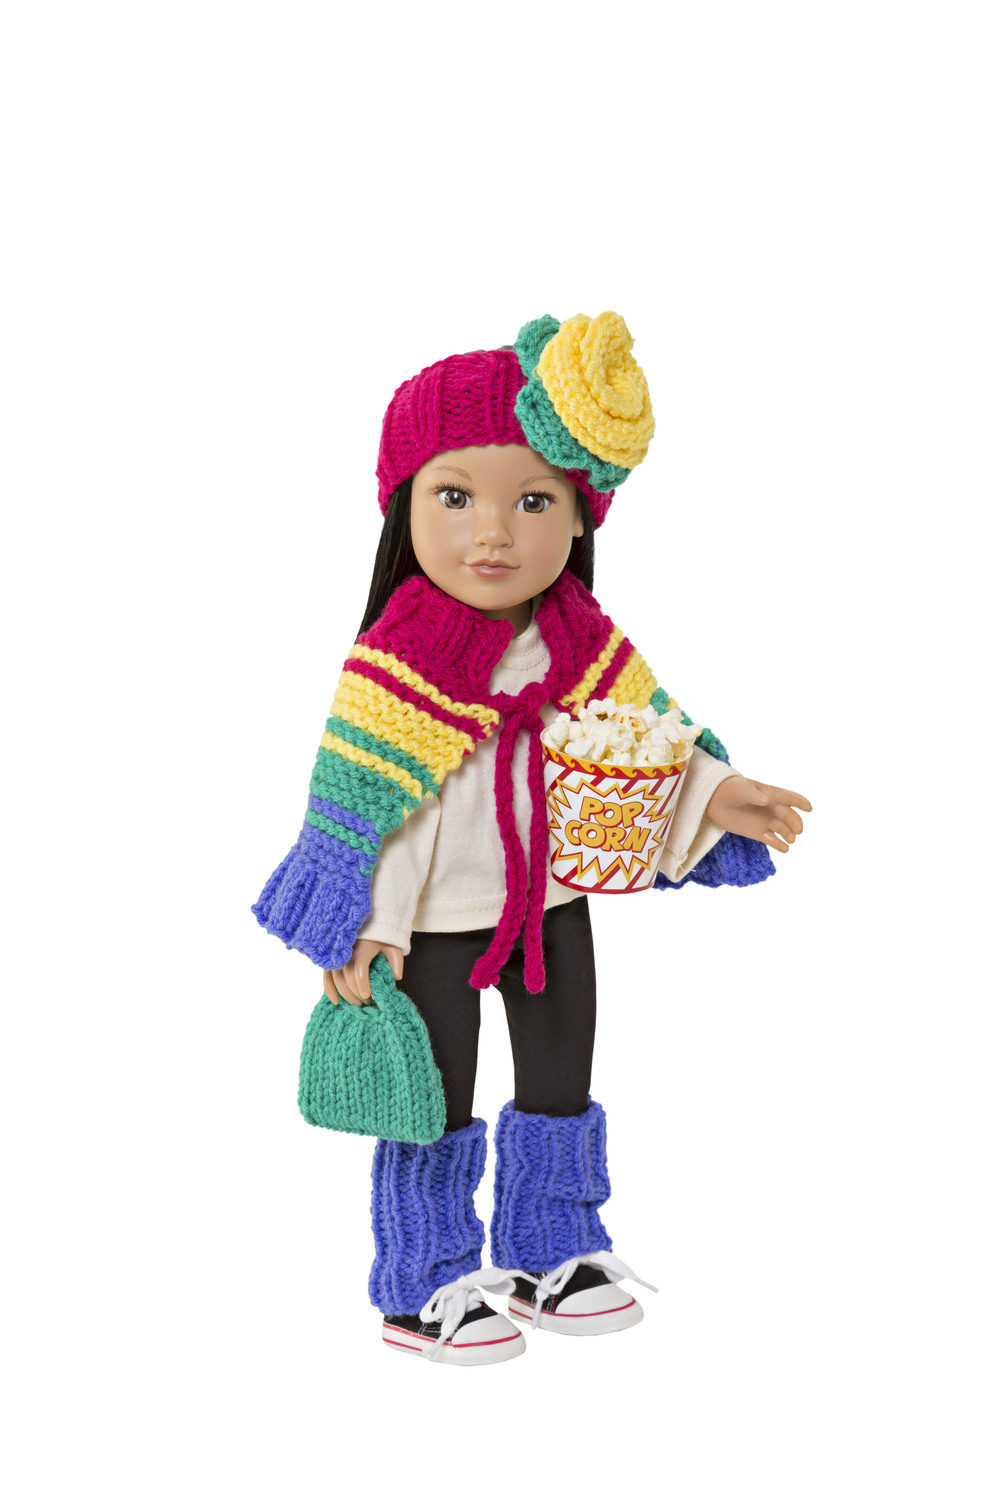 ITM_Doll_Knit_Movie_8241.jpg